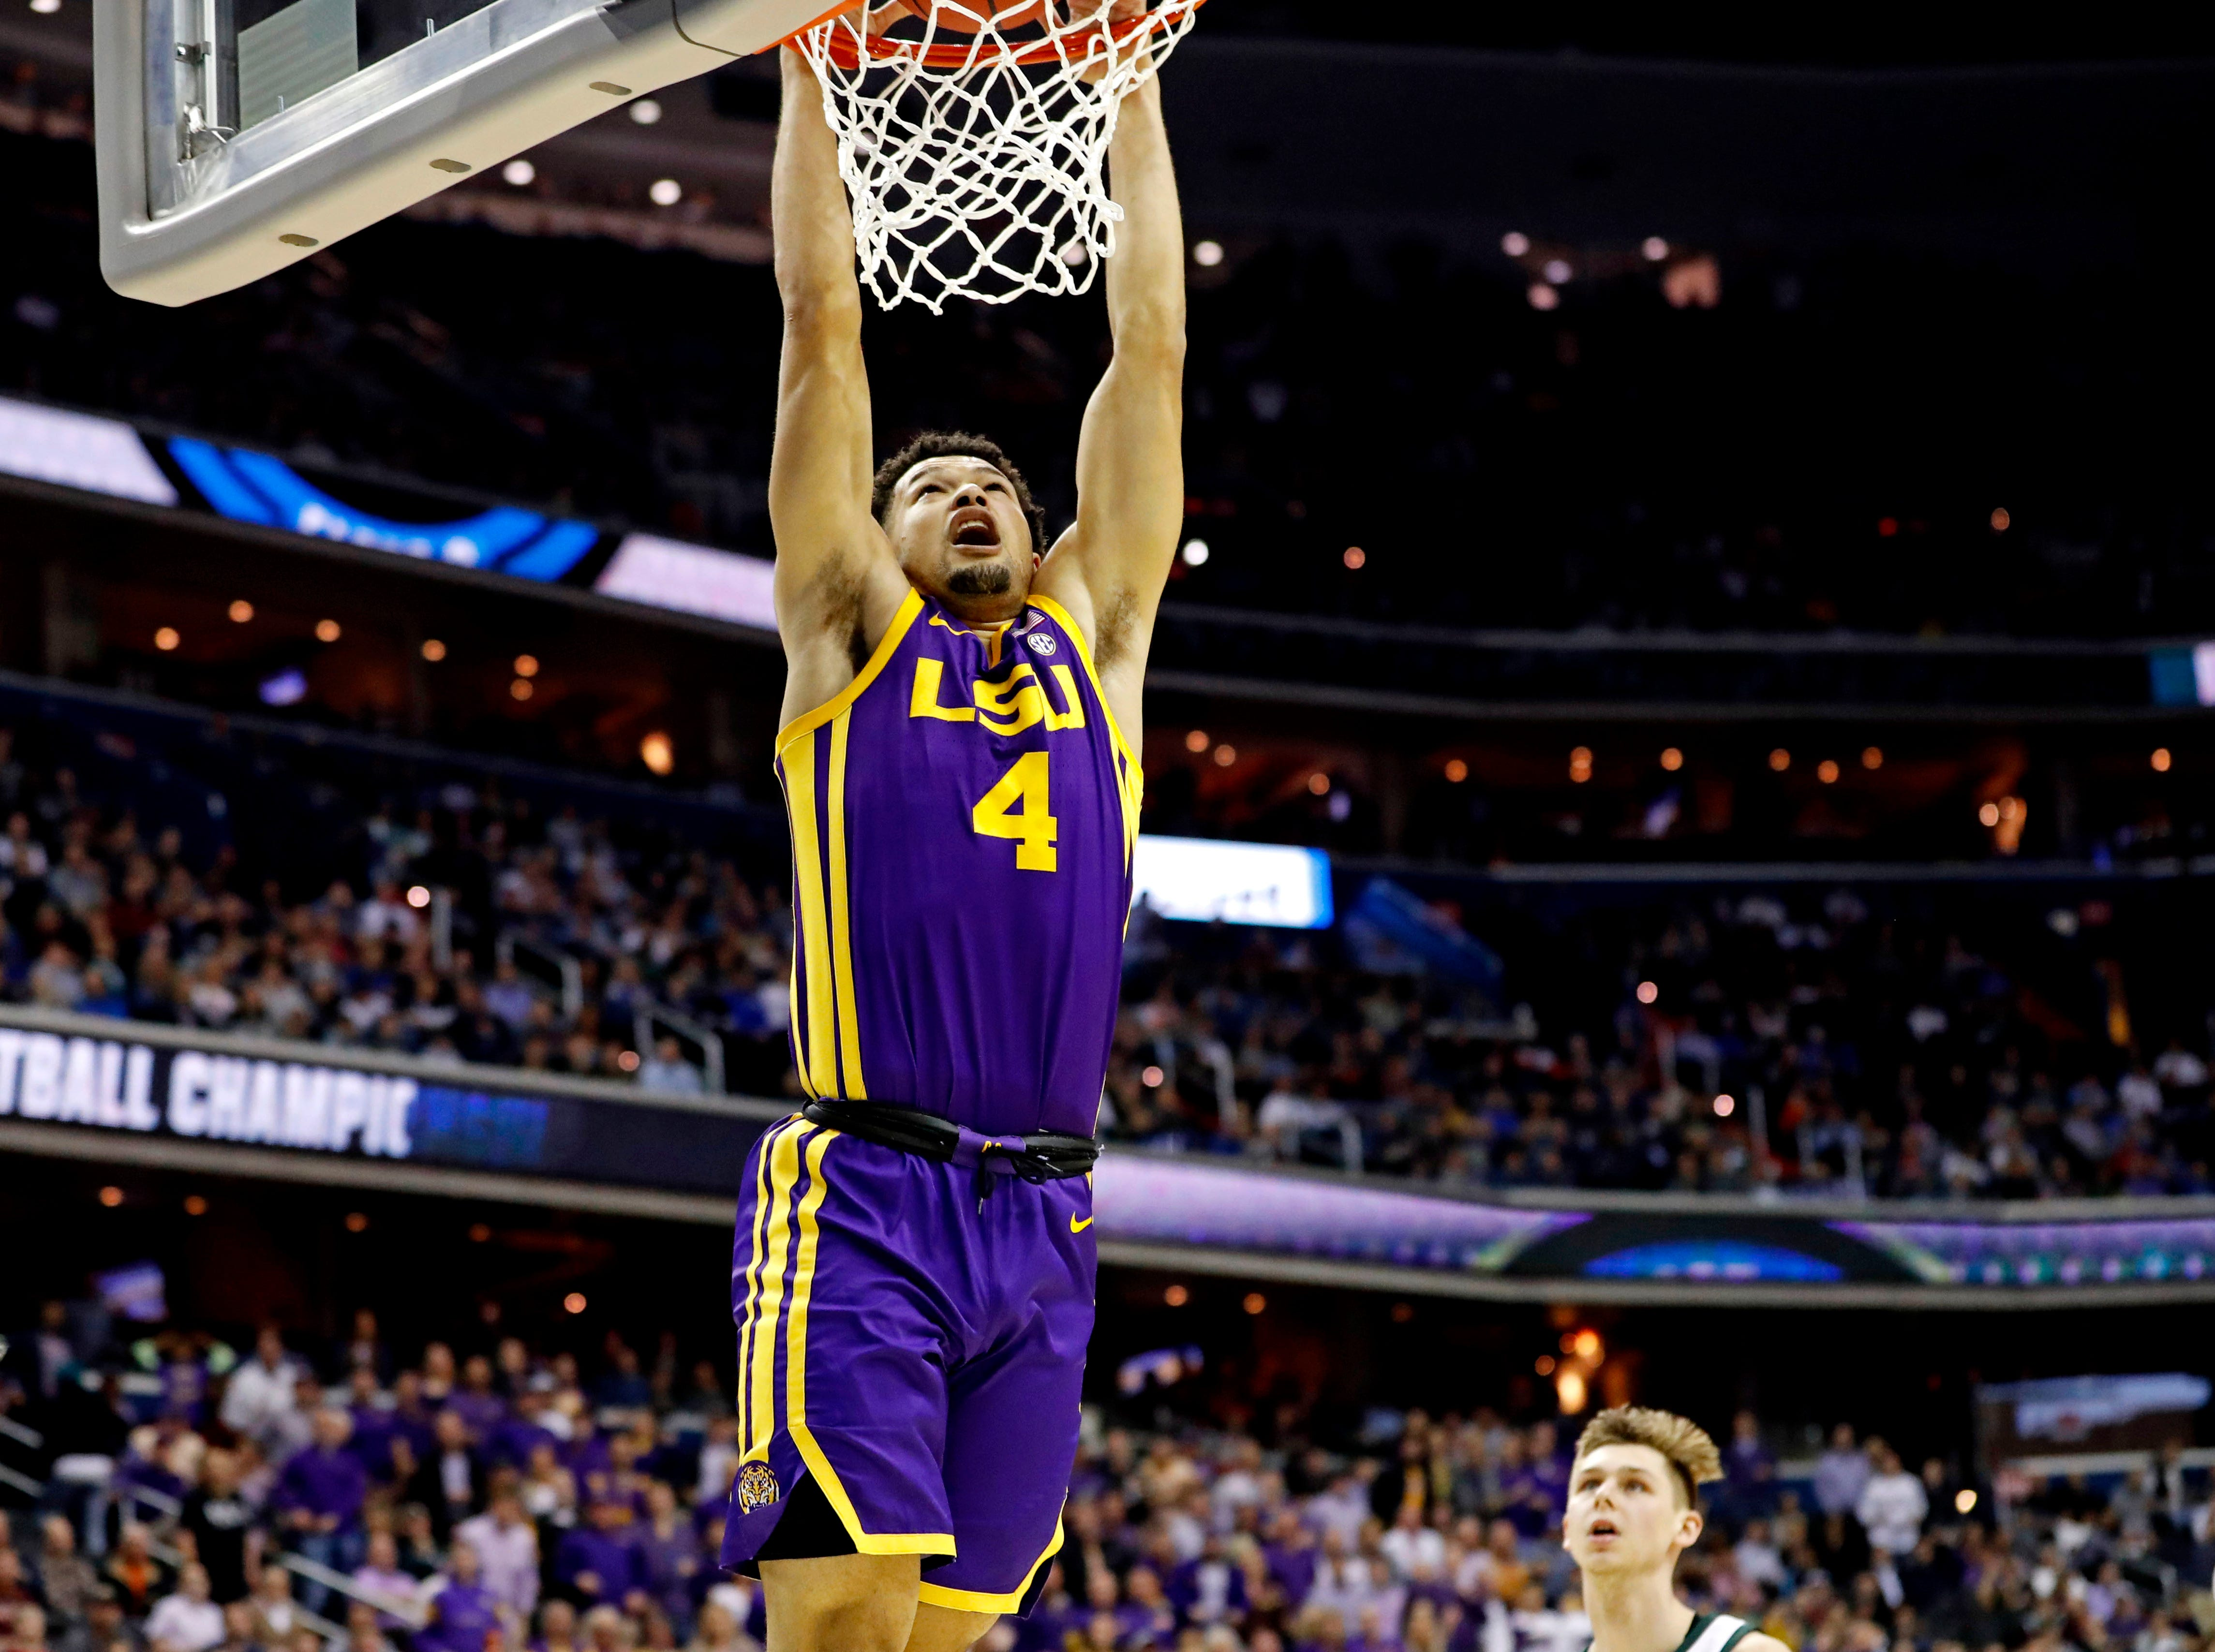 Mar 29, 2019; Washington, DC, USA; LSU Tigers guard Skylar Mays (4) dunks the ball \1h\ against the Michigan State Spartans in the semifinals of the east regional of the 2019 NCAA Tournament at Capital One Arena. Mandatory Credit: Geoff Burke-USA TODAY Sports